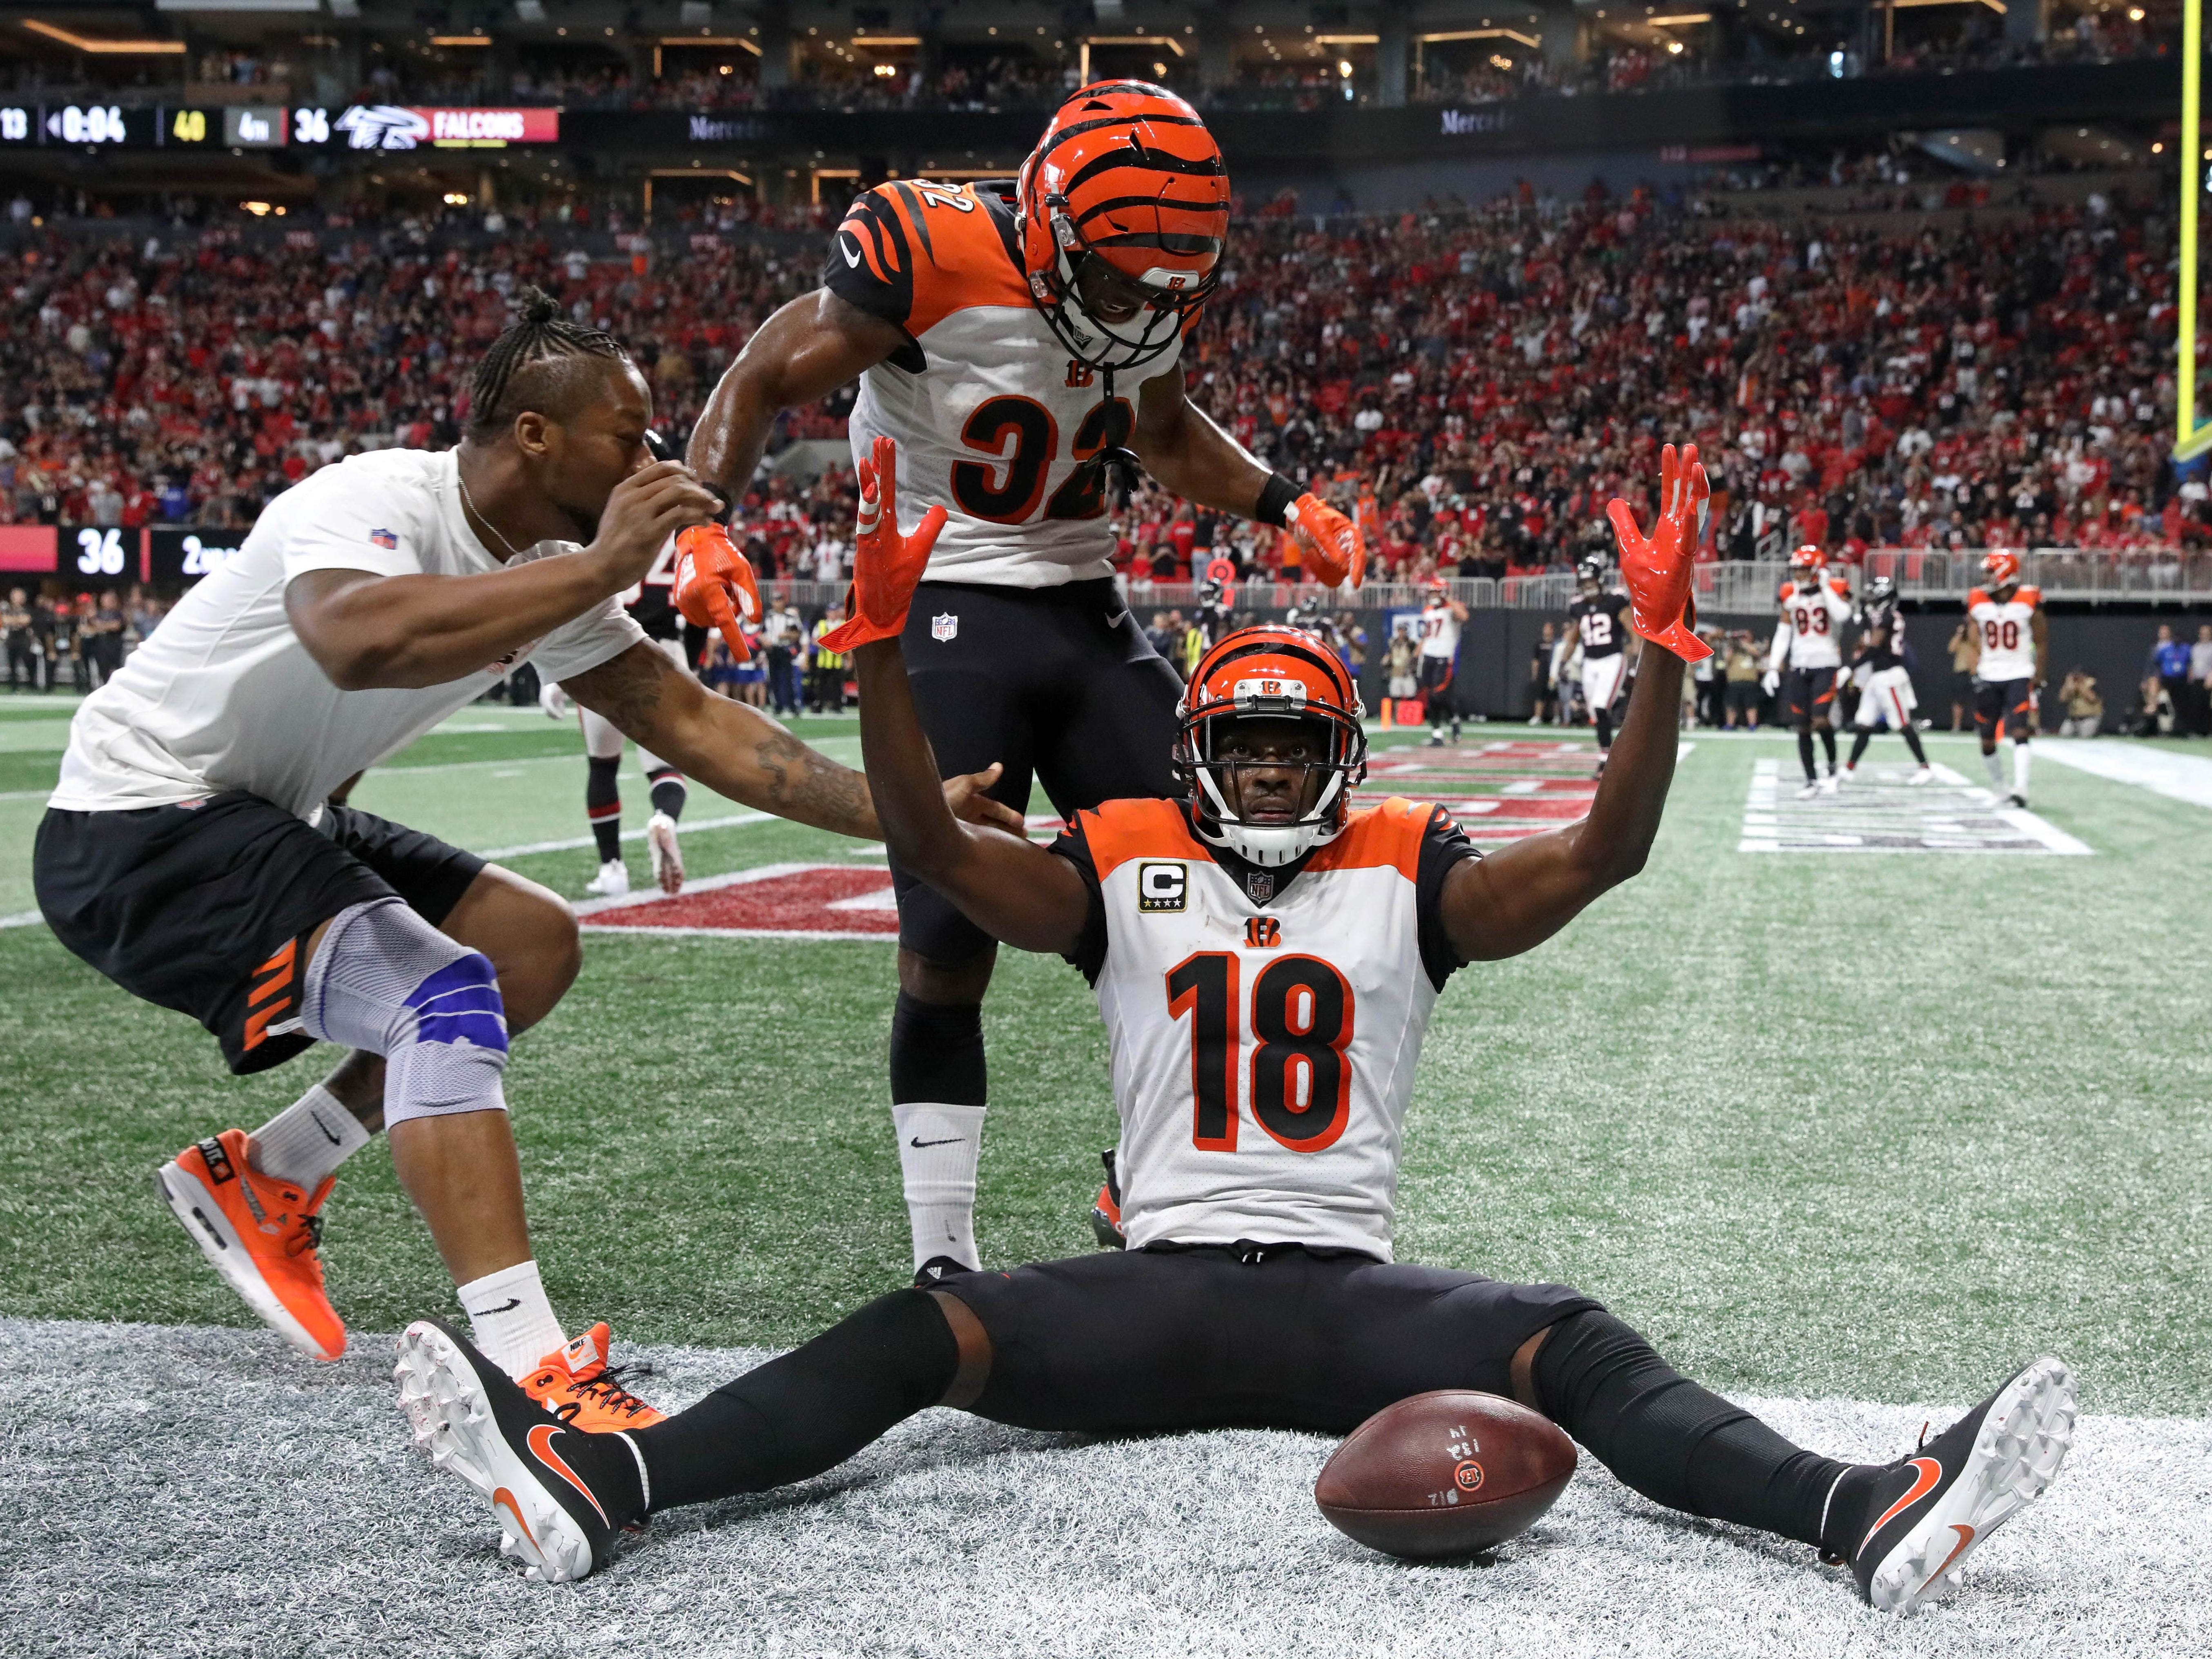 Cincinnati Bengals wide receiver A.J. Green celebrates  after making the  game-winning touchdown catch in the fourth quarter against the Atlanta Falcons at Mercedes-Benz Stadium.